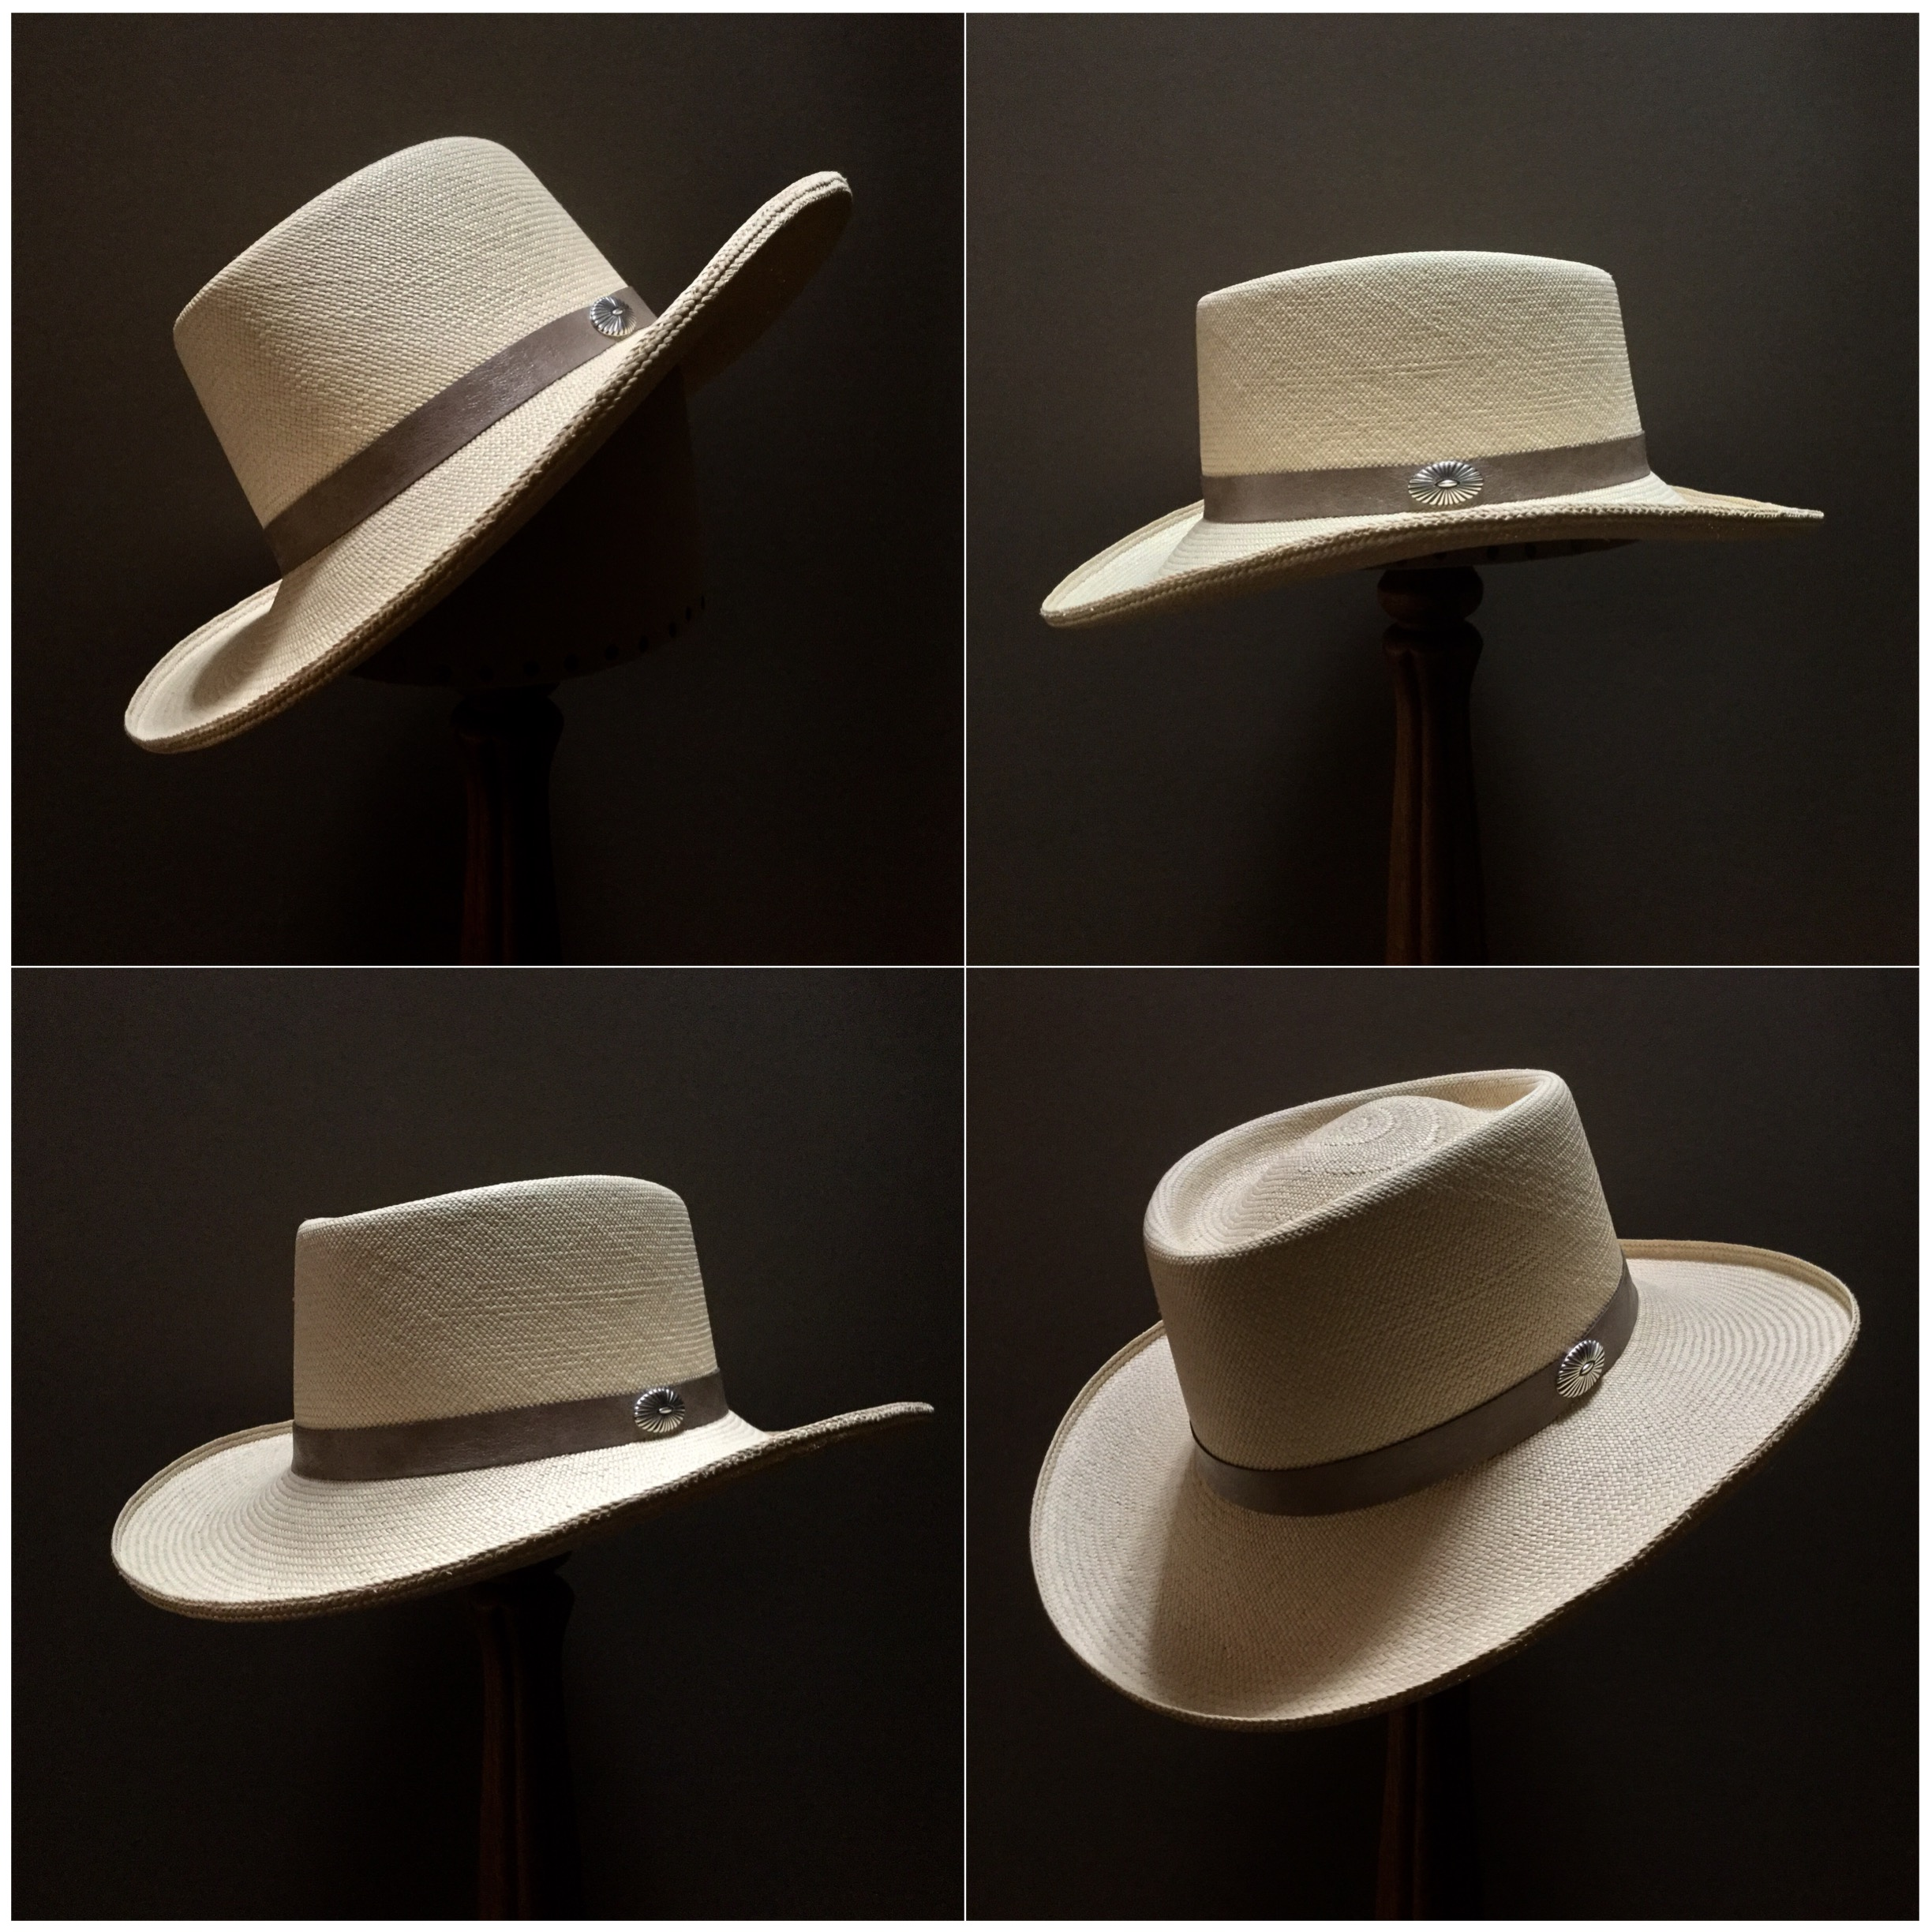 Weave: Cuenca Grade: 14/16 Brim Set: Naturalist with micro curl Trim: Leather with sterling silver concha